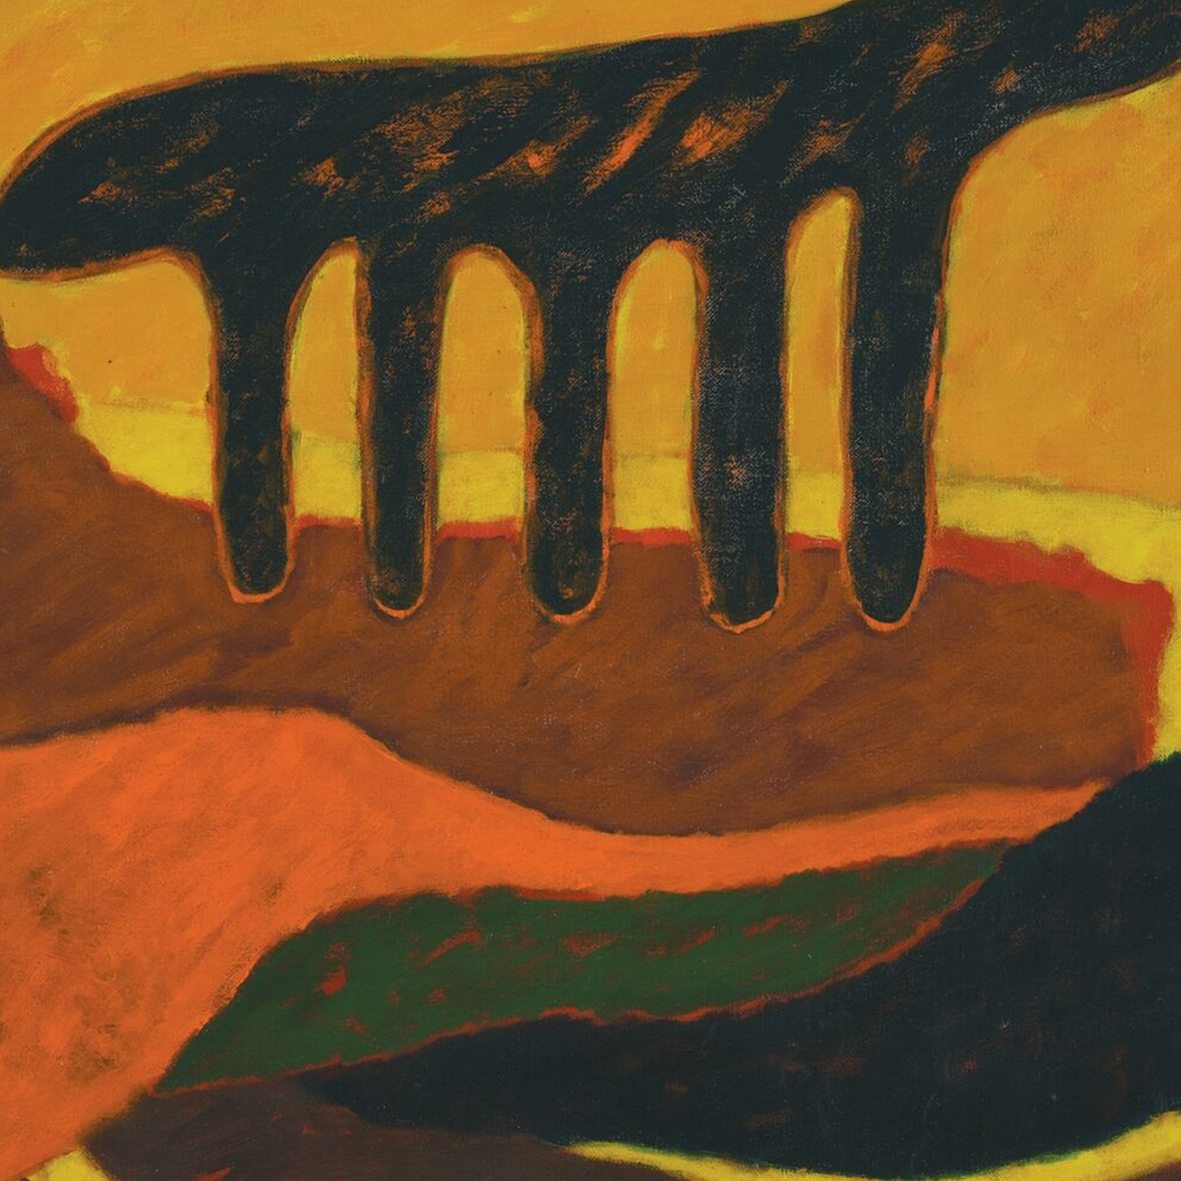 Nashar, Irama, oil on canvas, 70 x 91 cm, 1989 (detail)